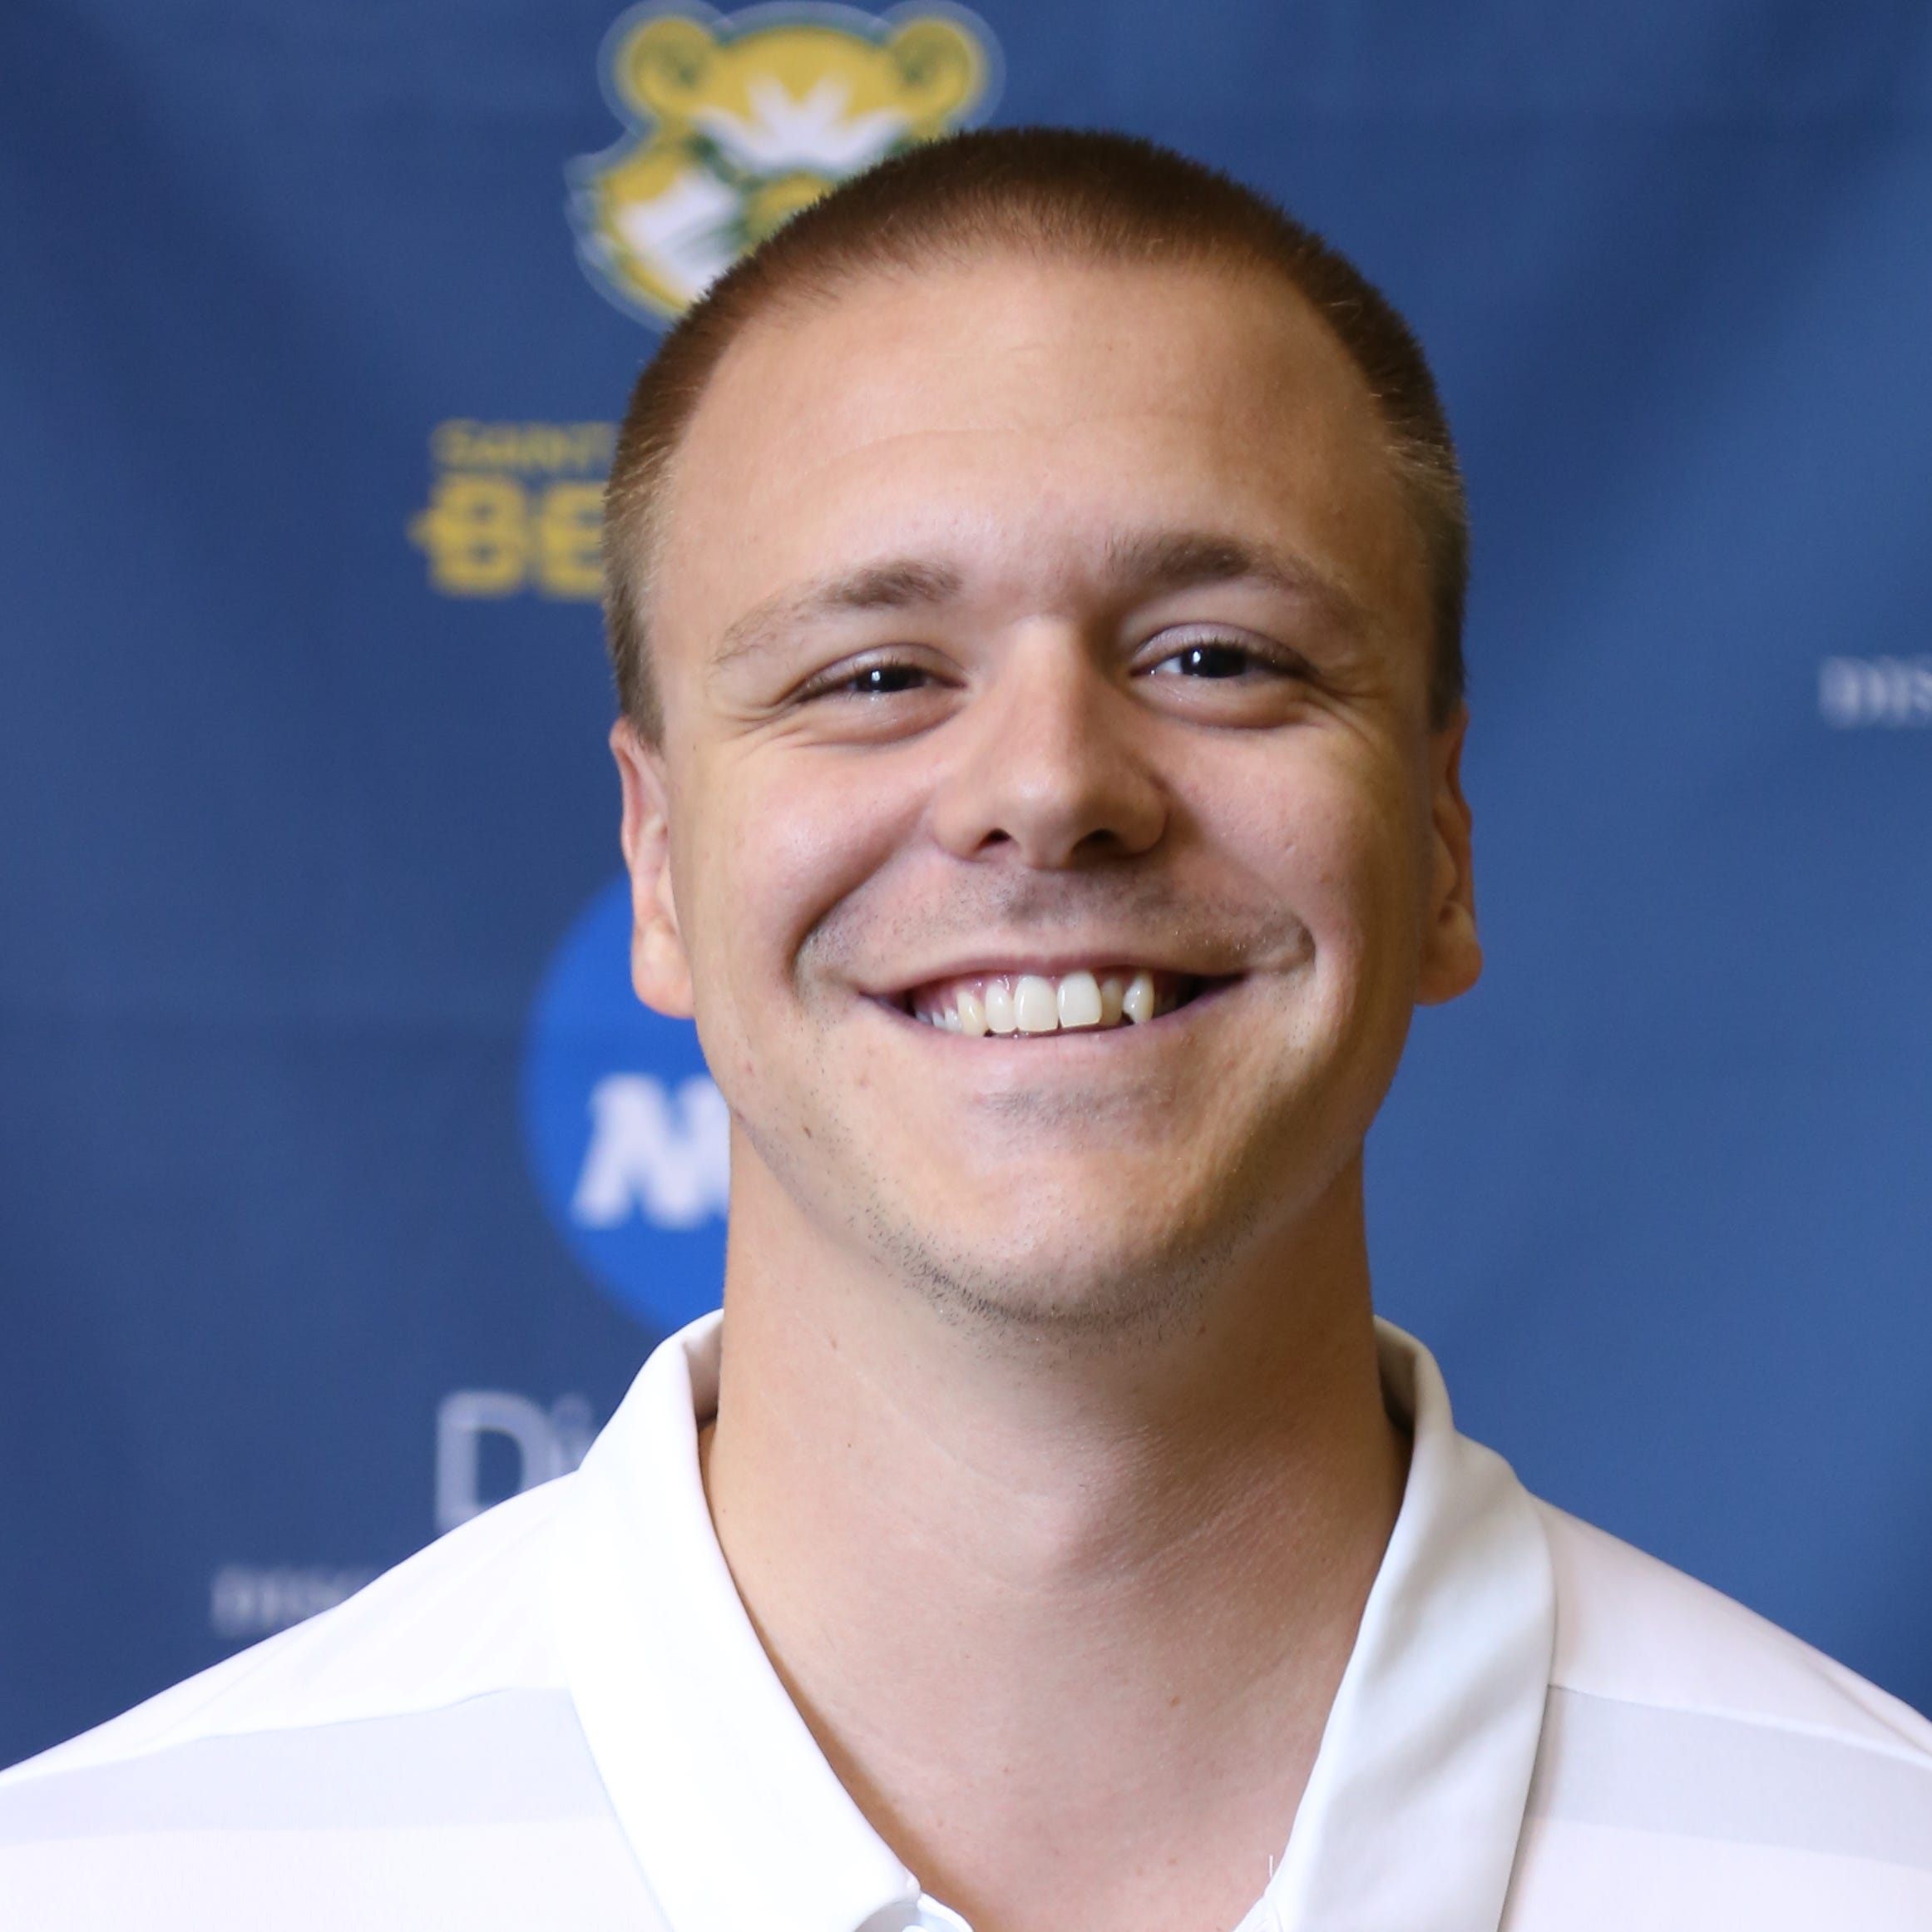 Eastern York grad named one of the nation's best young basketball coaches